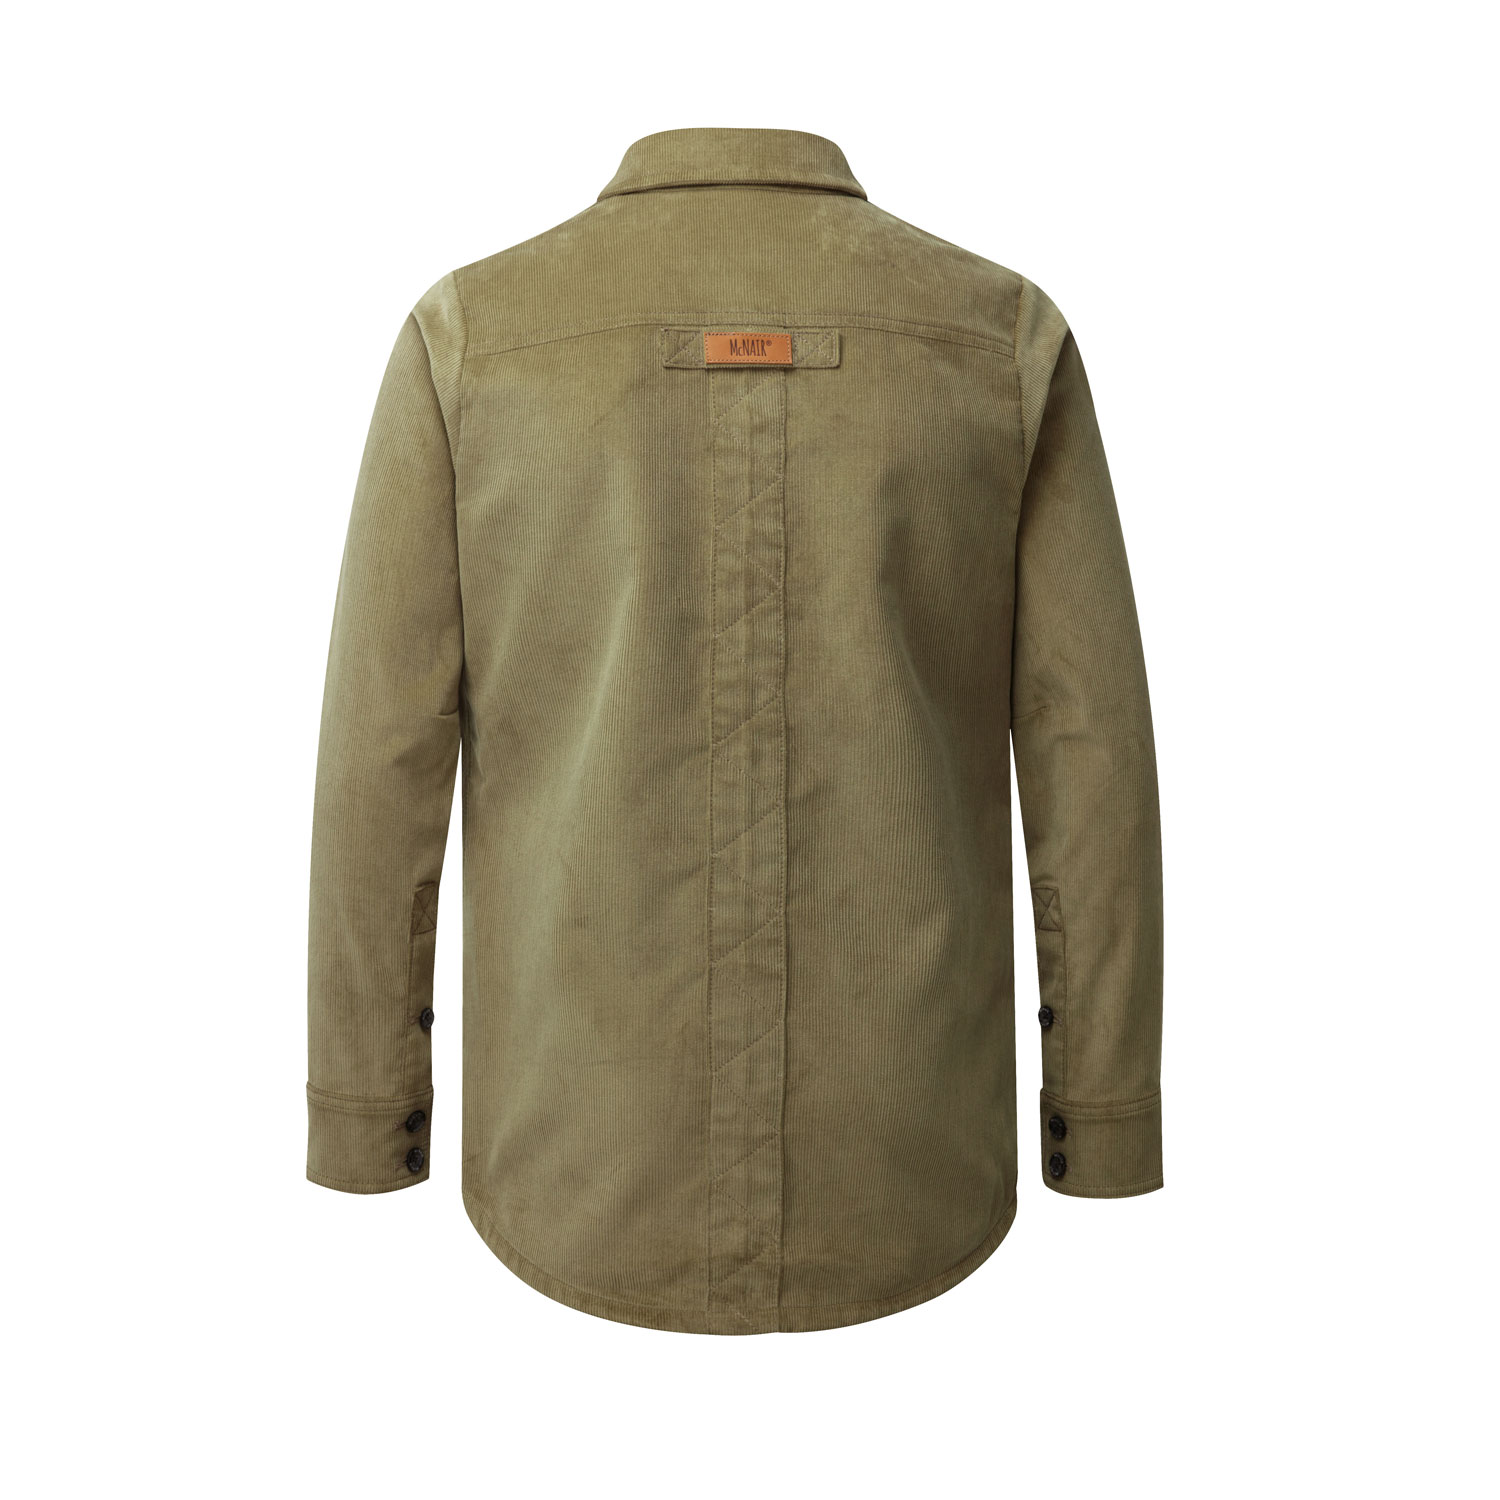 McNair Men's PlasmaDry corduroy shirt in light olive